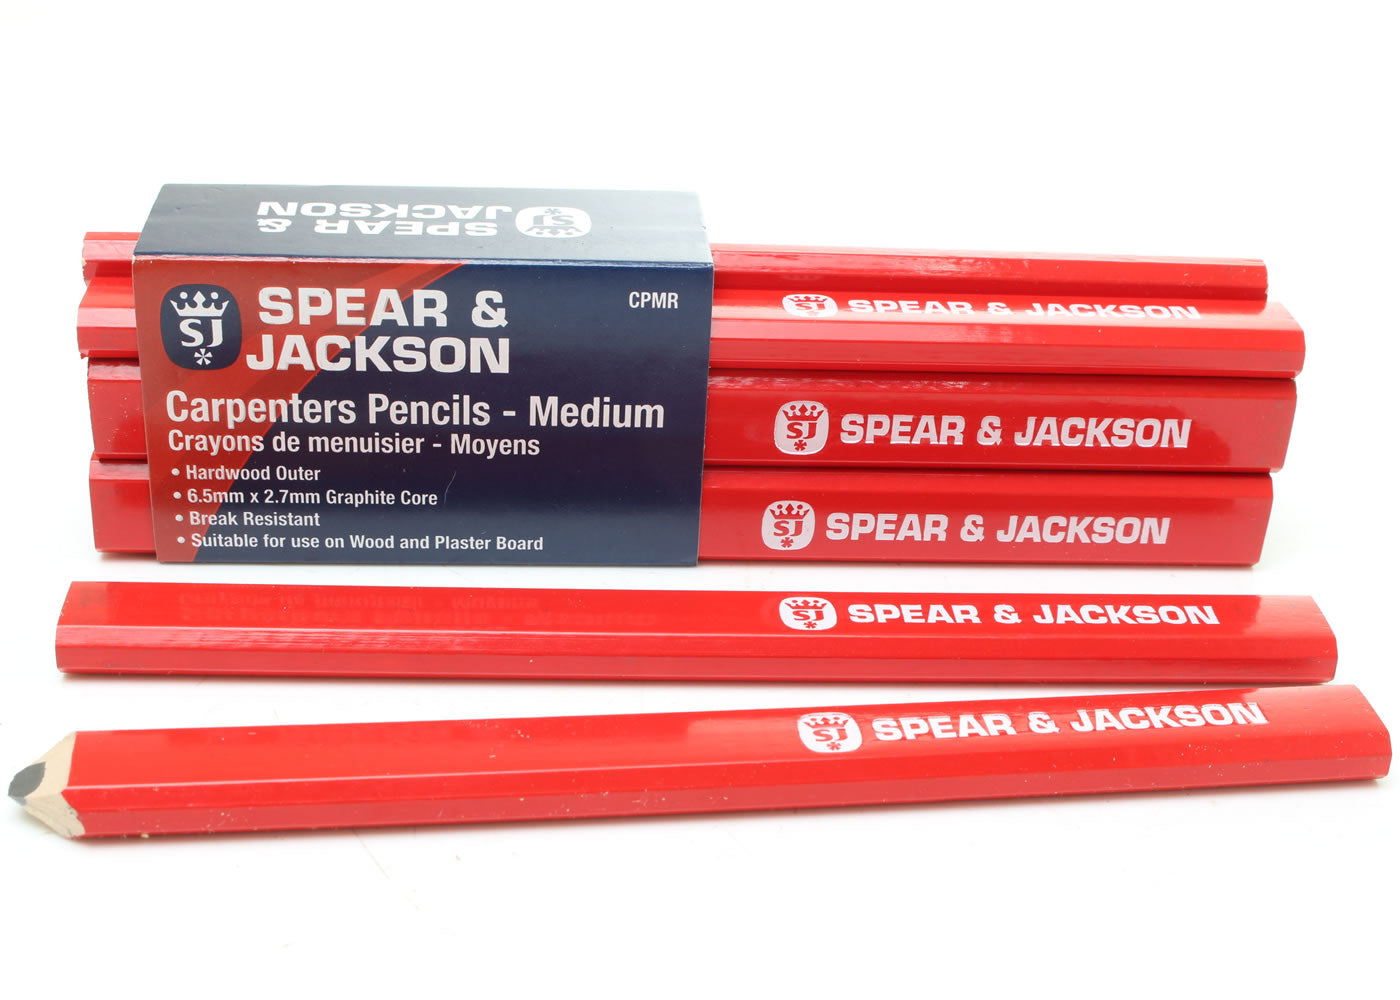 Spear and Jackson Carpenters Pencils - Medium - 12 Pack